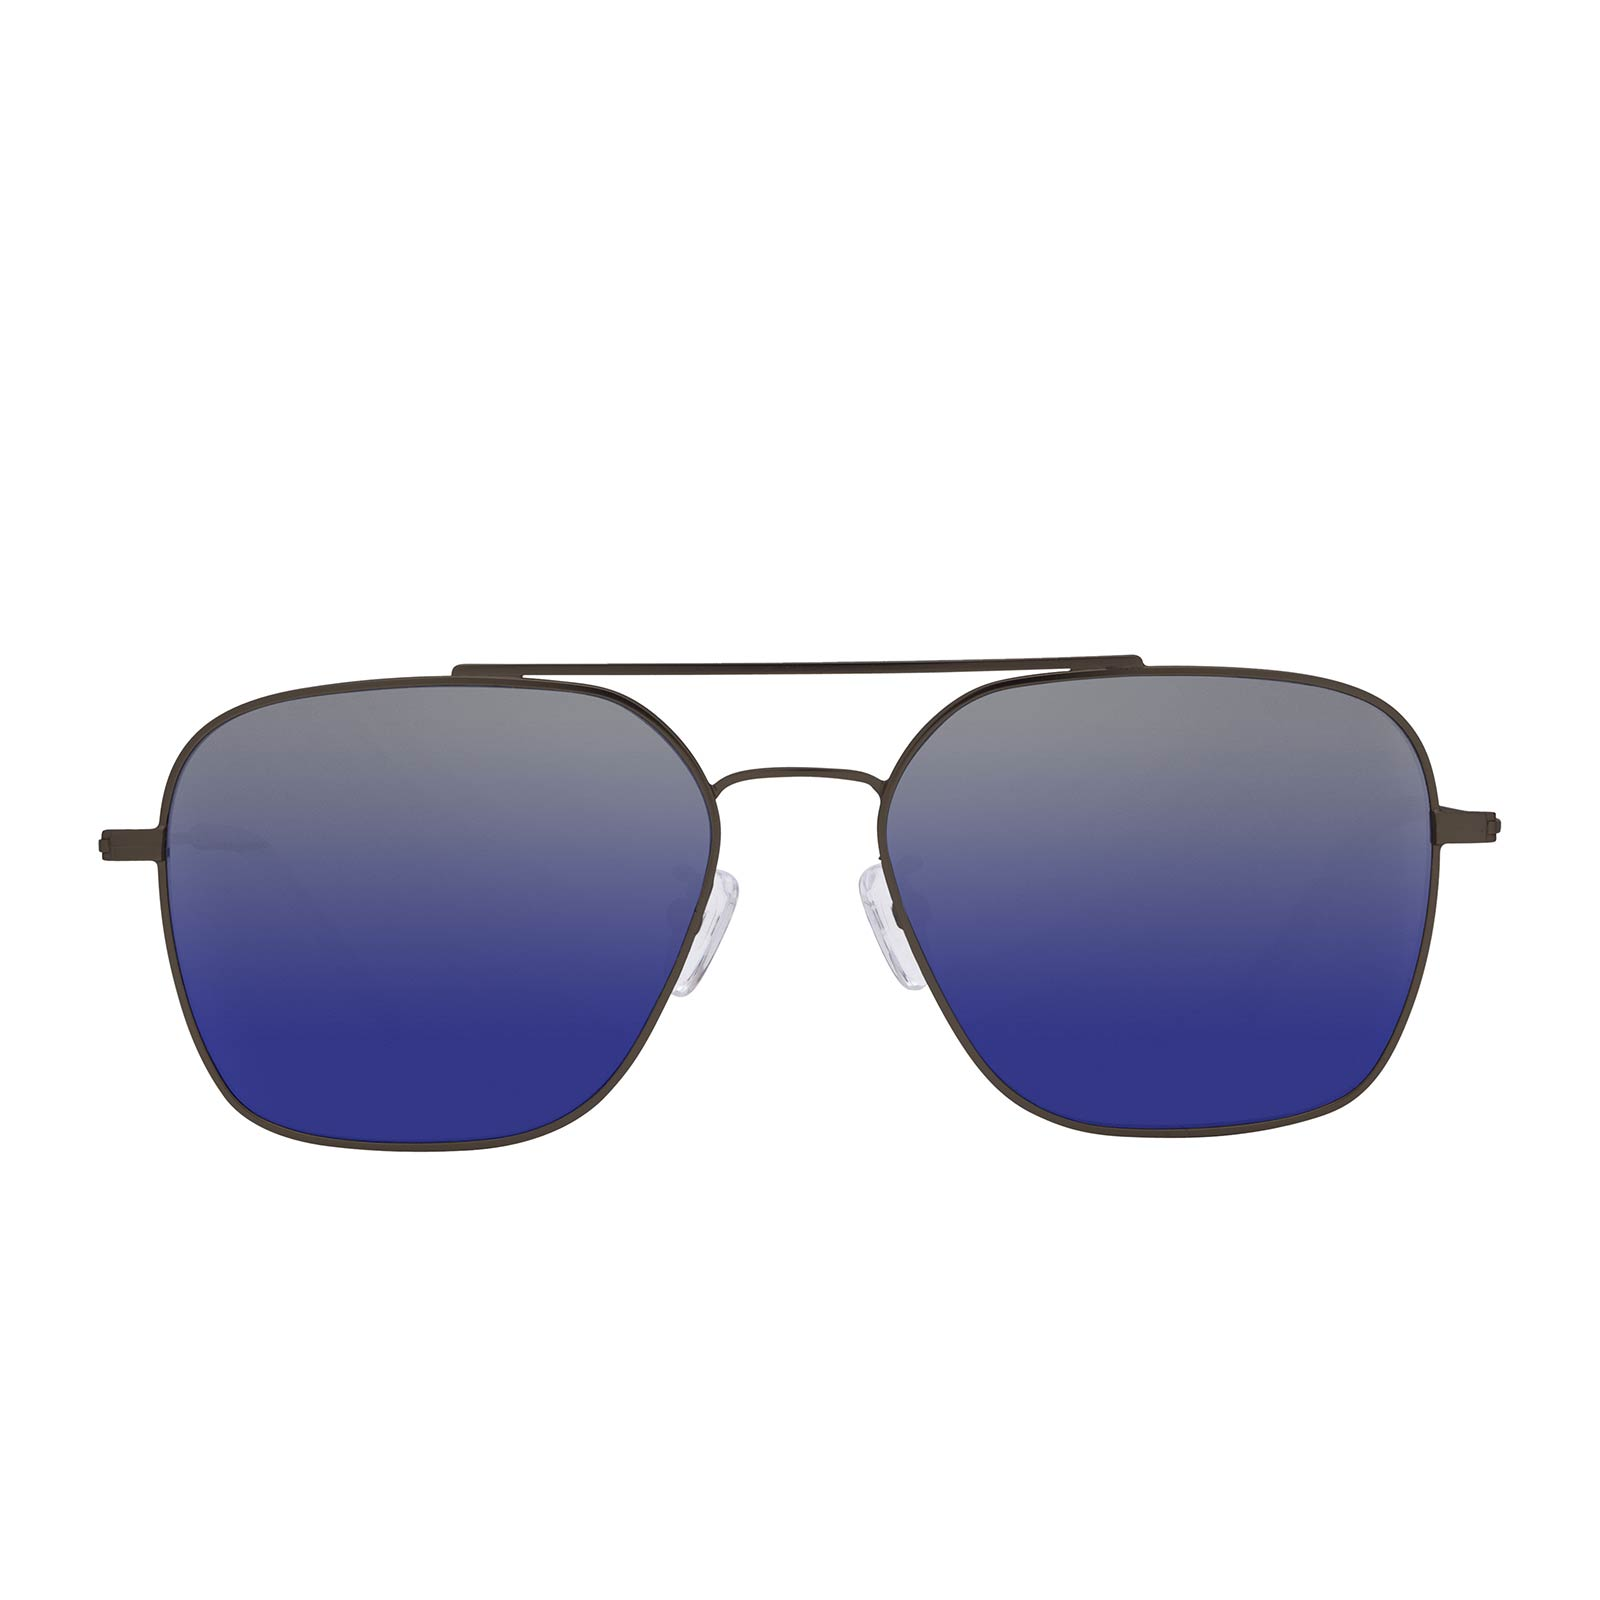 ACE - BRUSHED BROWN + GREY BLUE GRADIENT + POLARIZED